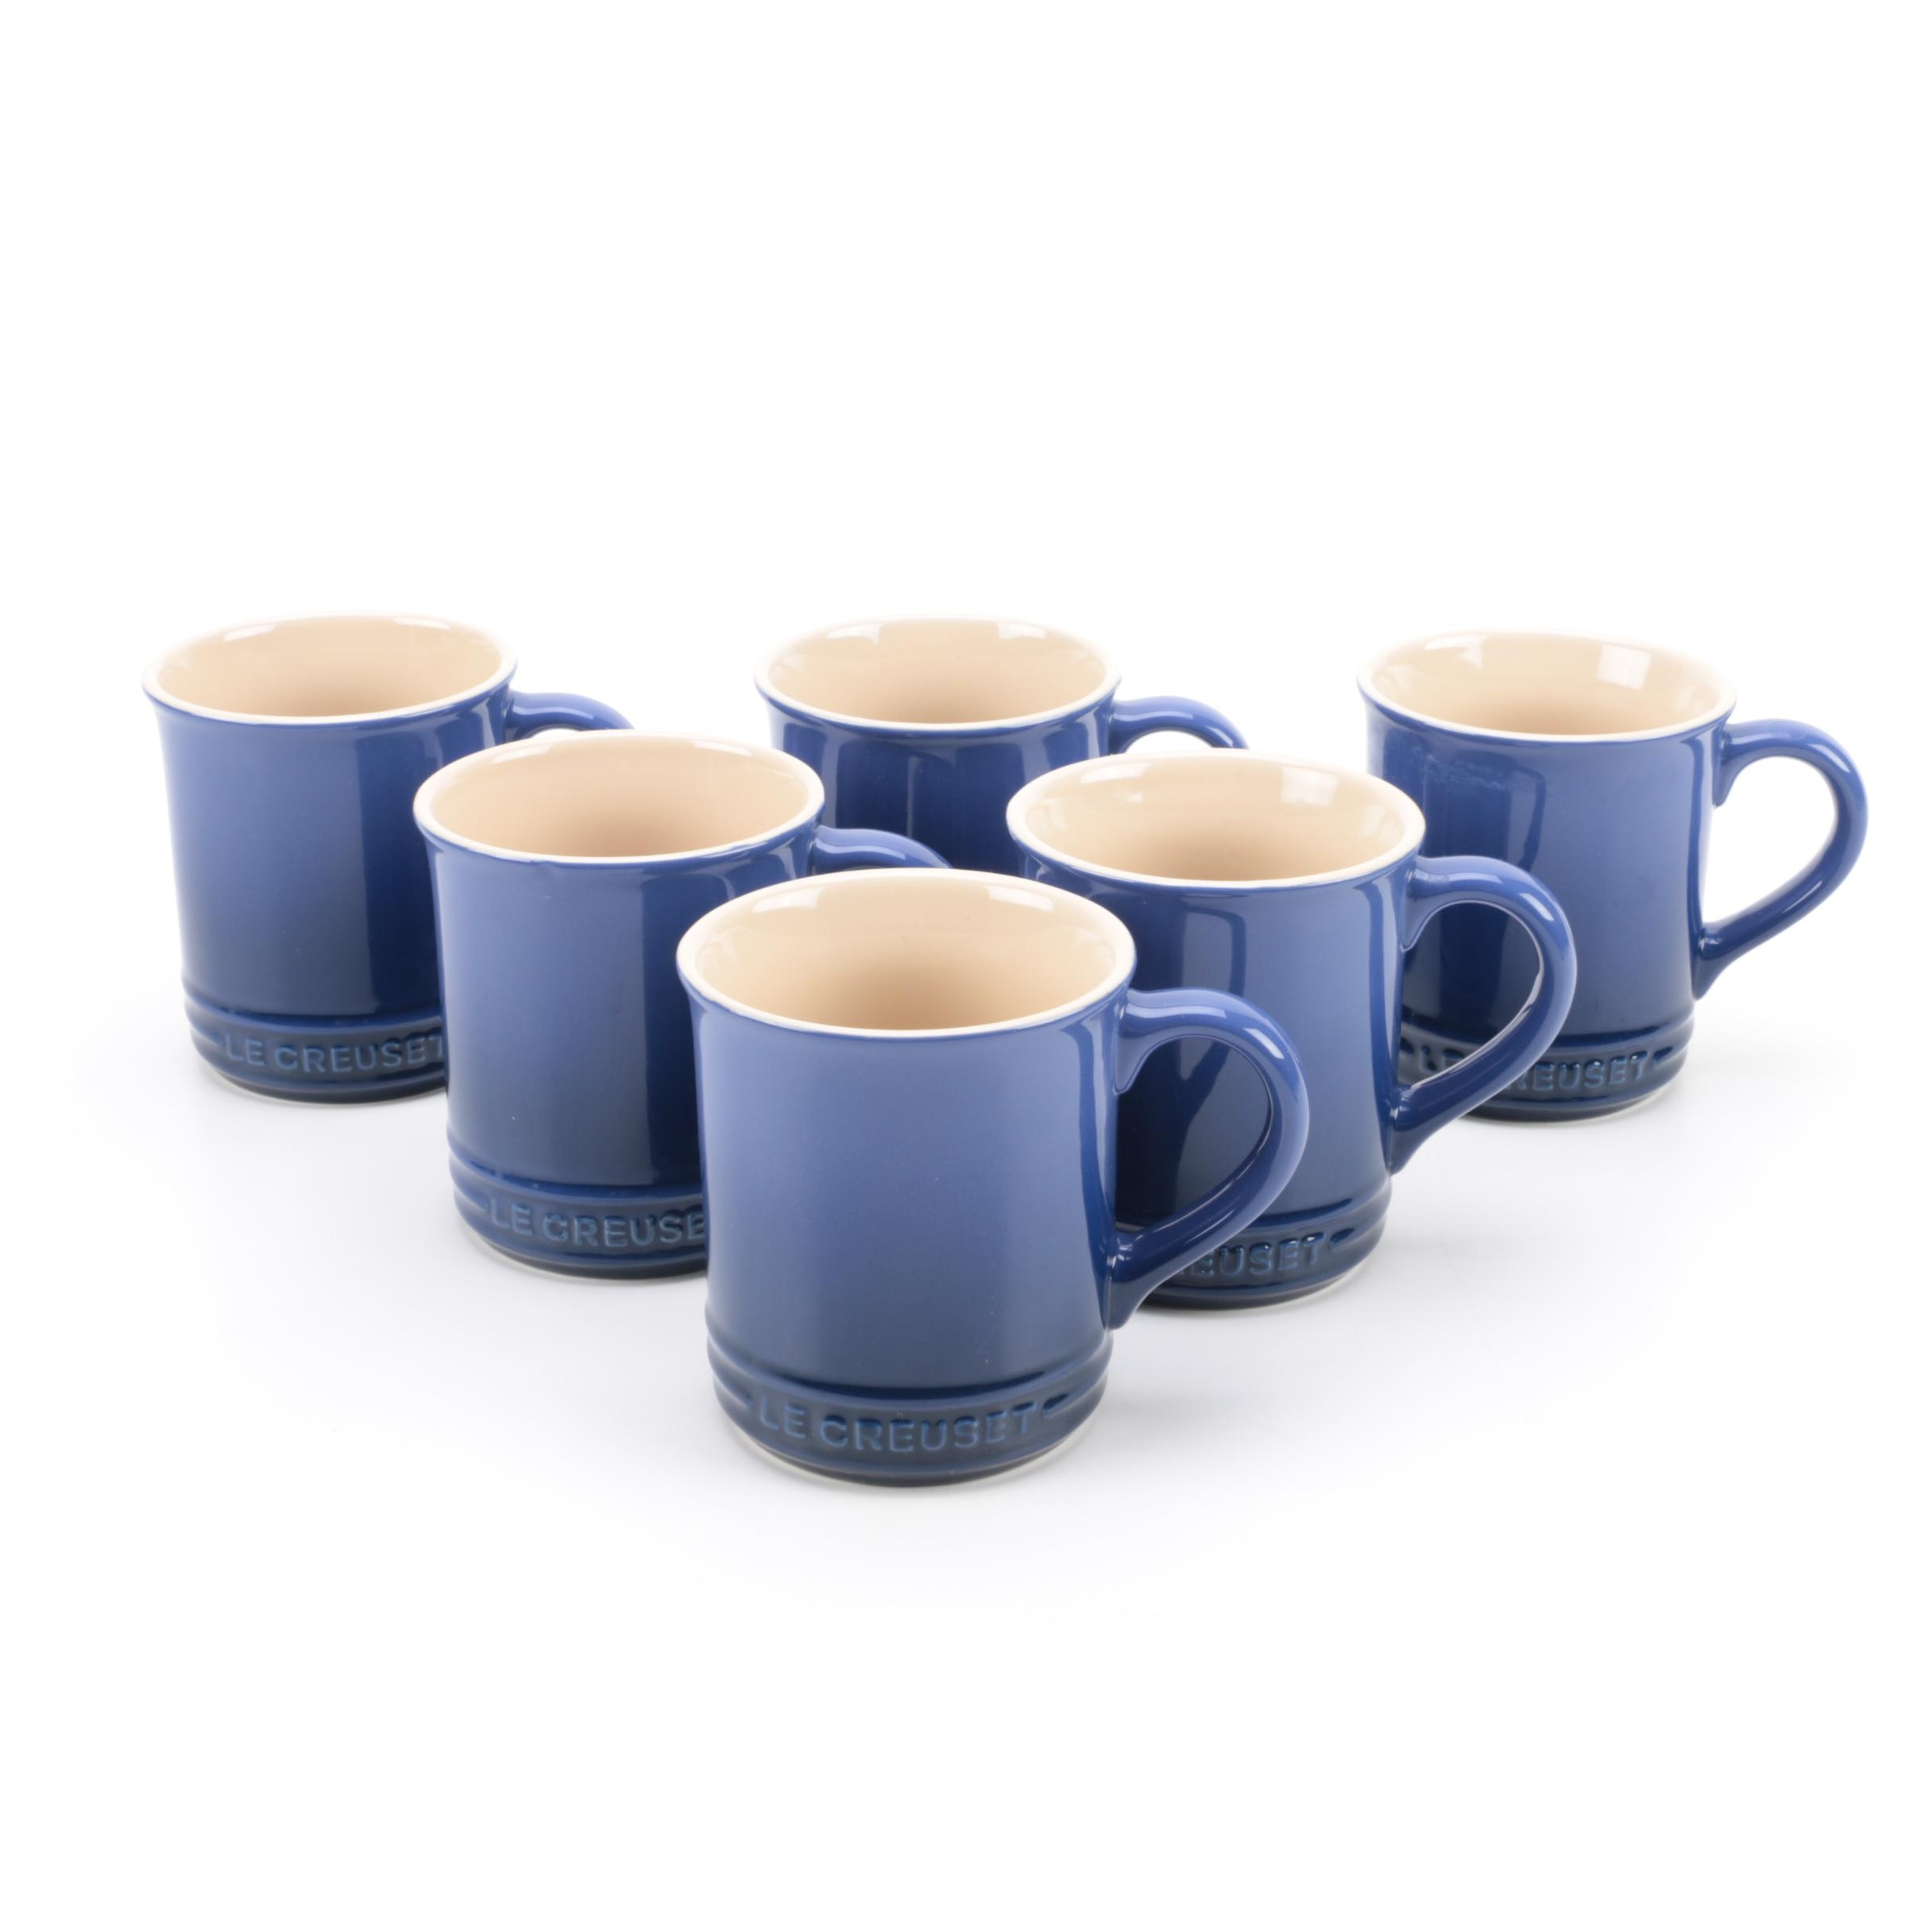 "Le Creuset ""Marseille"" Coffee Mugs"